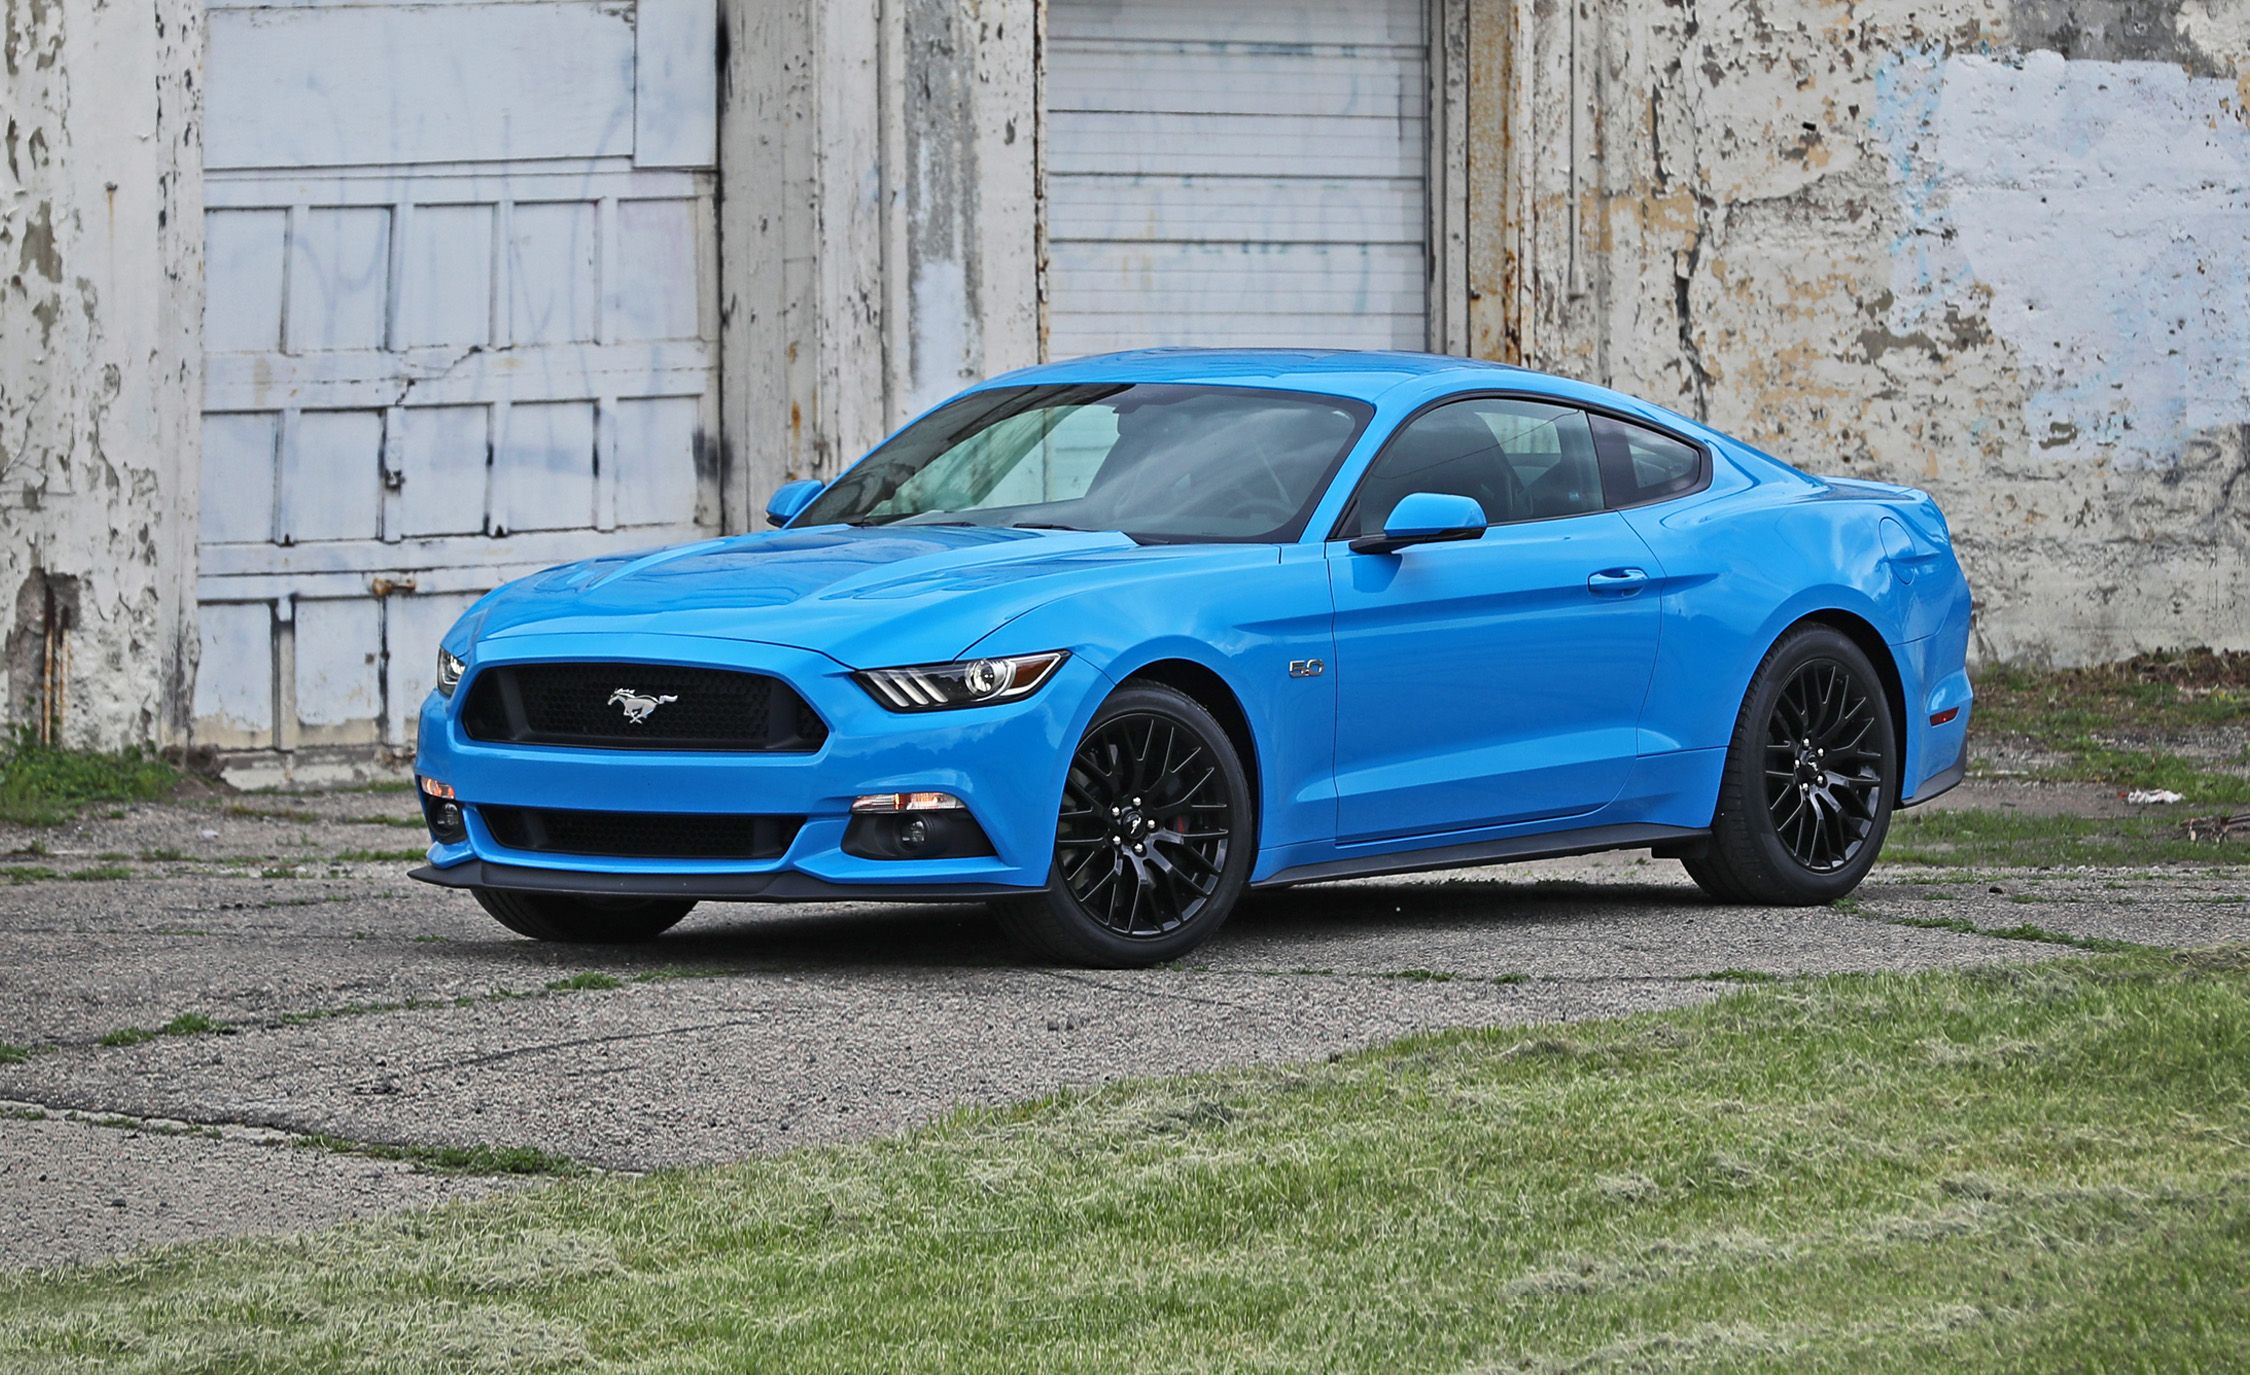 2017 Ford Mustang & 2017 Ford Mustang | In-Depth Model Review | Car and Driver markmcfarlin.com